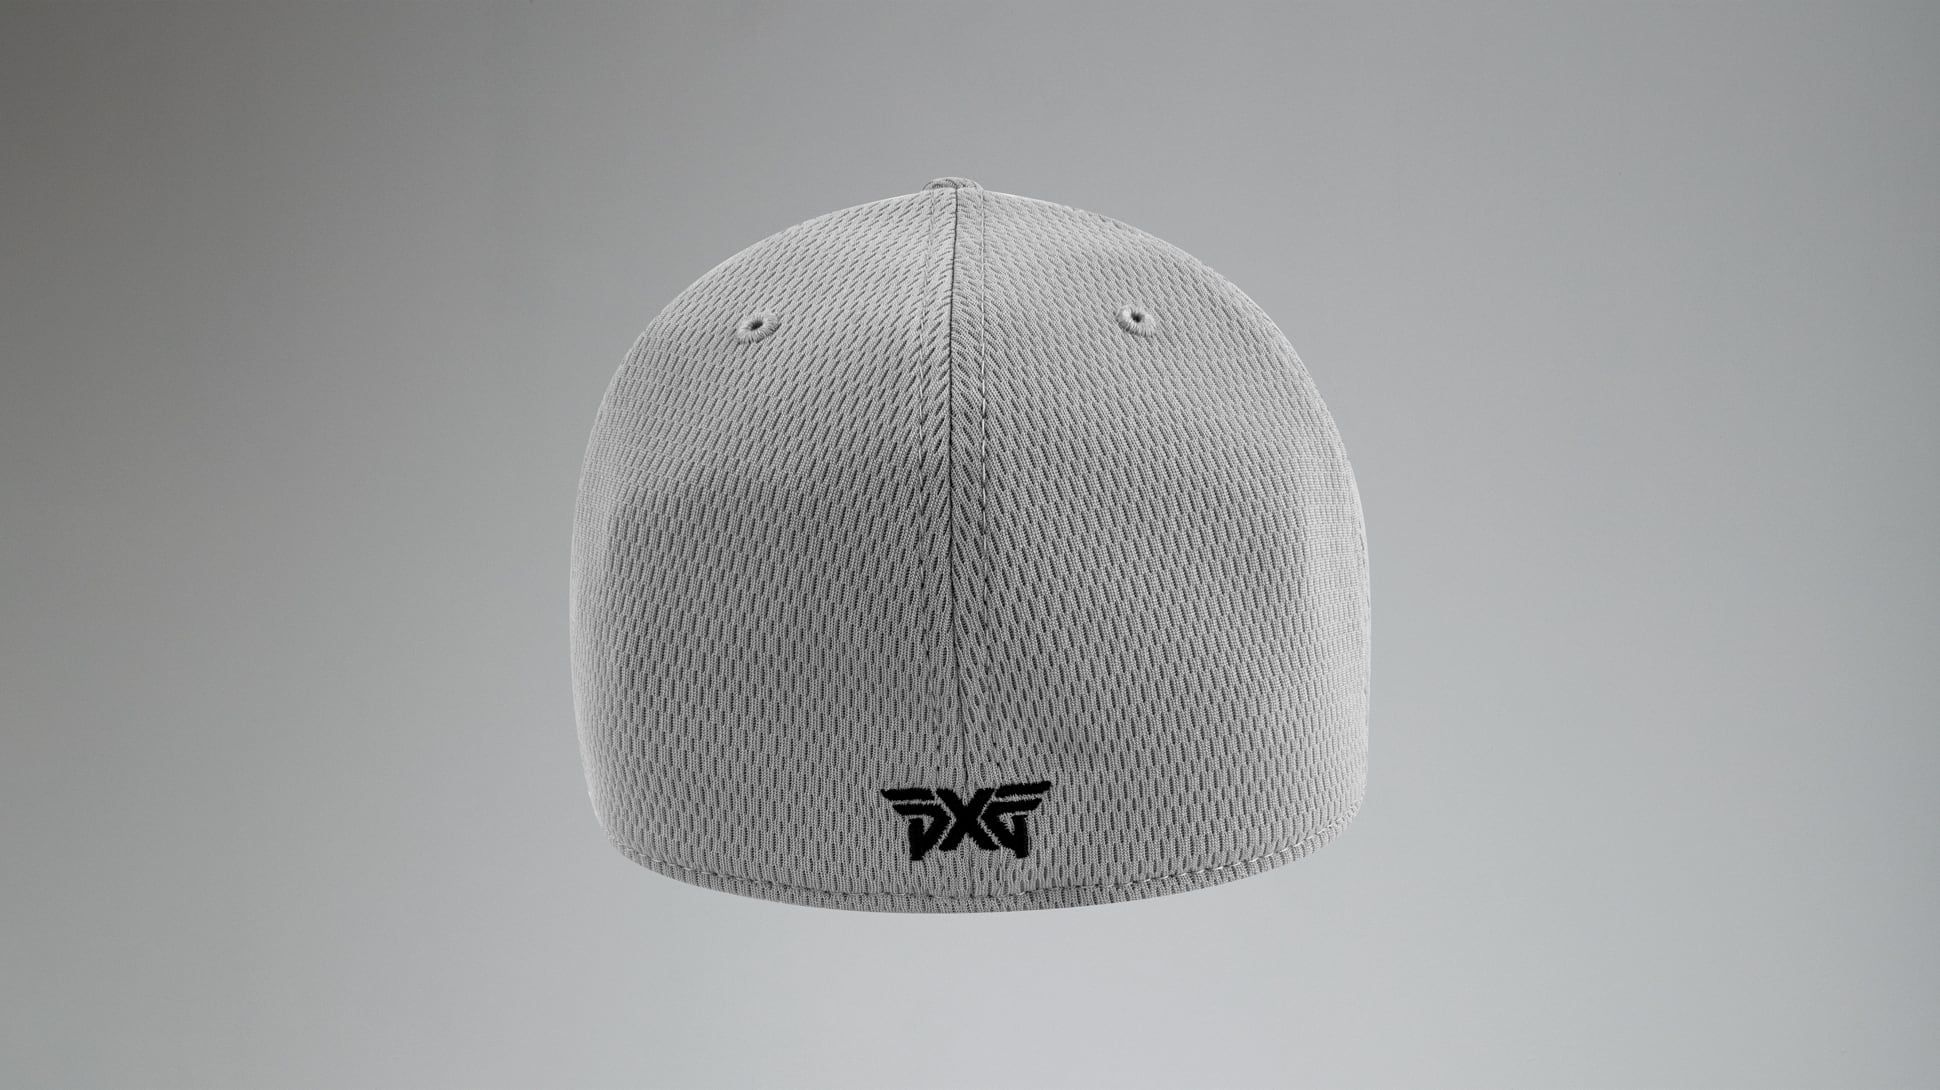 Performance Line 39THIRTY Stretch Fit Cap Image 2